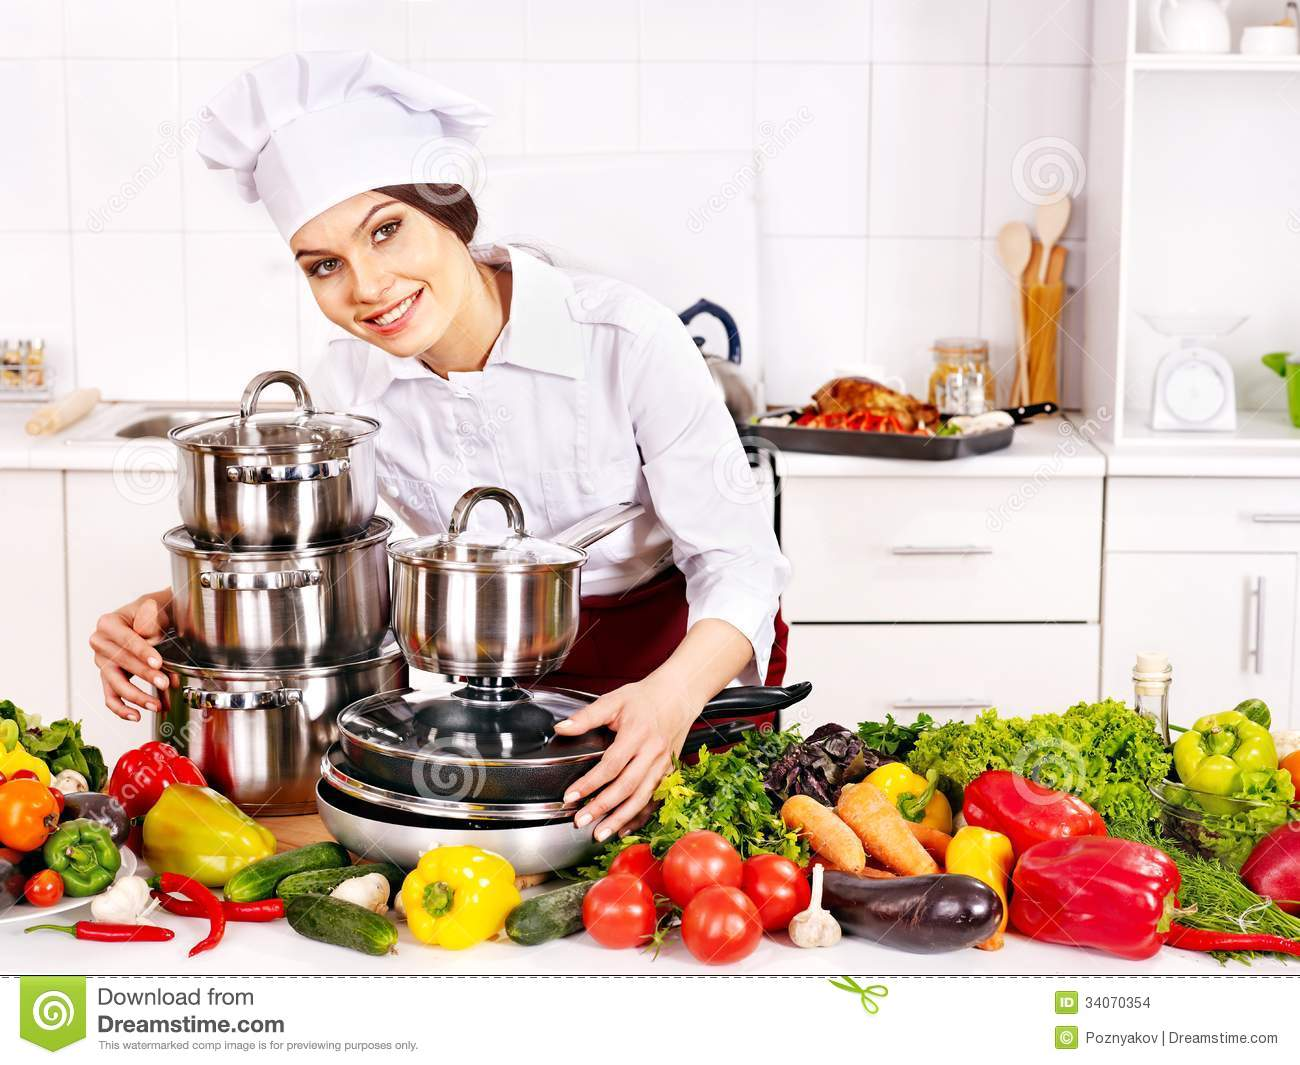 housewife-cooking-kitchen-happy-cook-woman-34070354.jpg